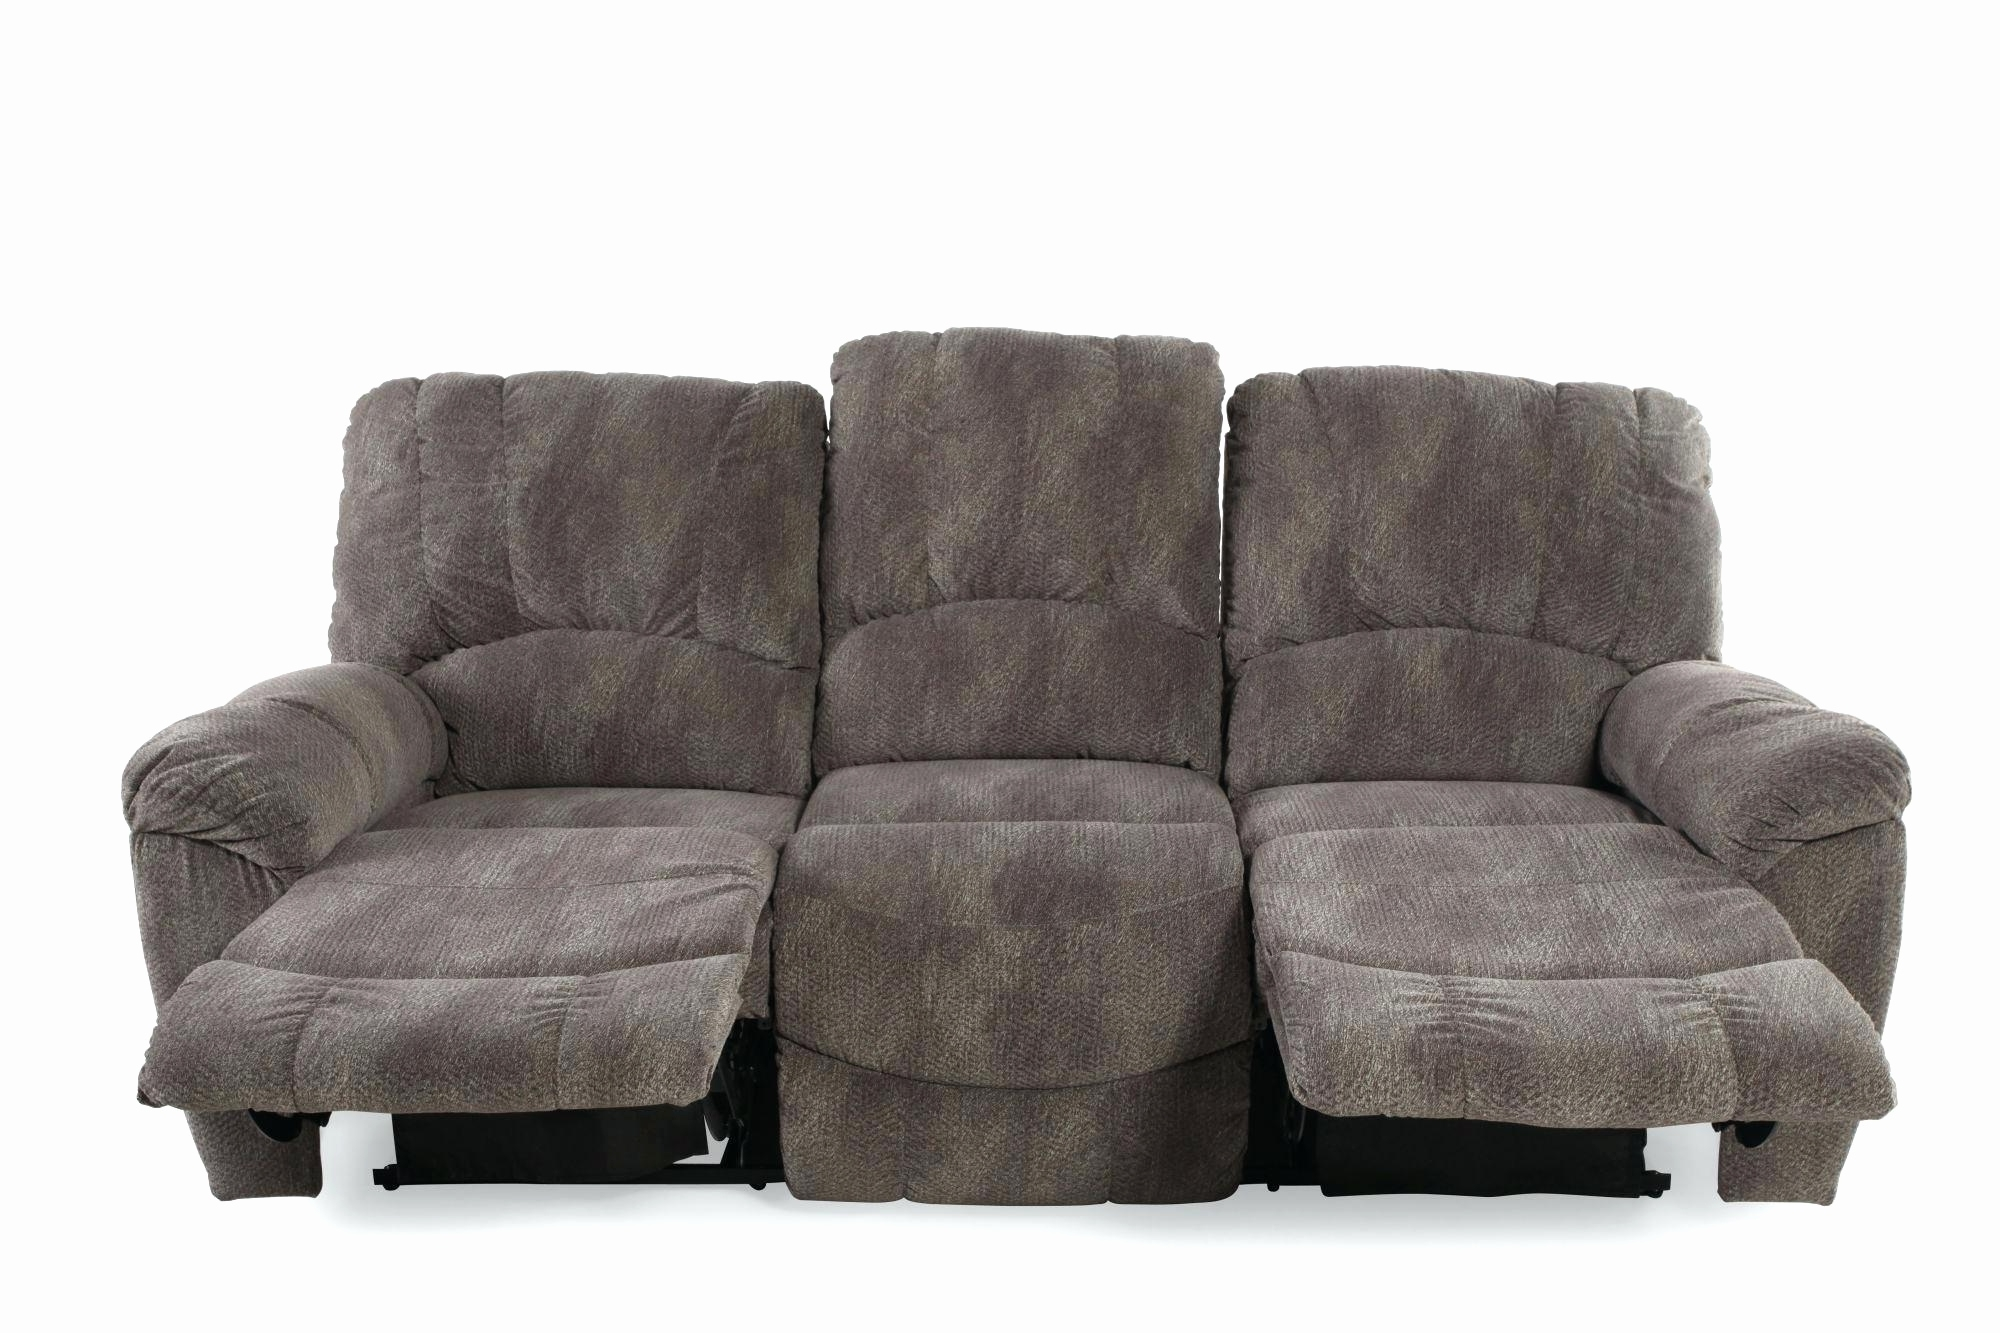 Best Lazy Boy L Shaped Sofa 2018 – Couches Ideas With Best And Newest Lazy Boy Chaise Lounge Chairs (View 12 of 15)